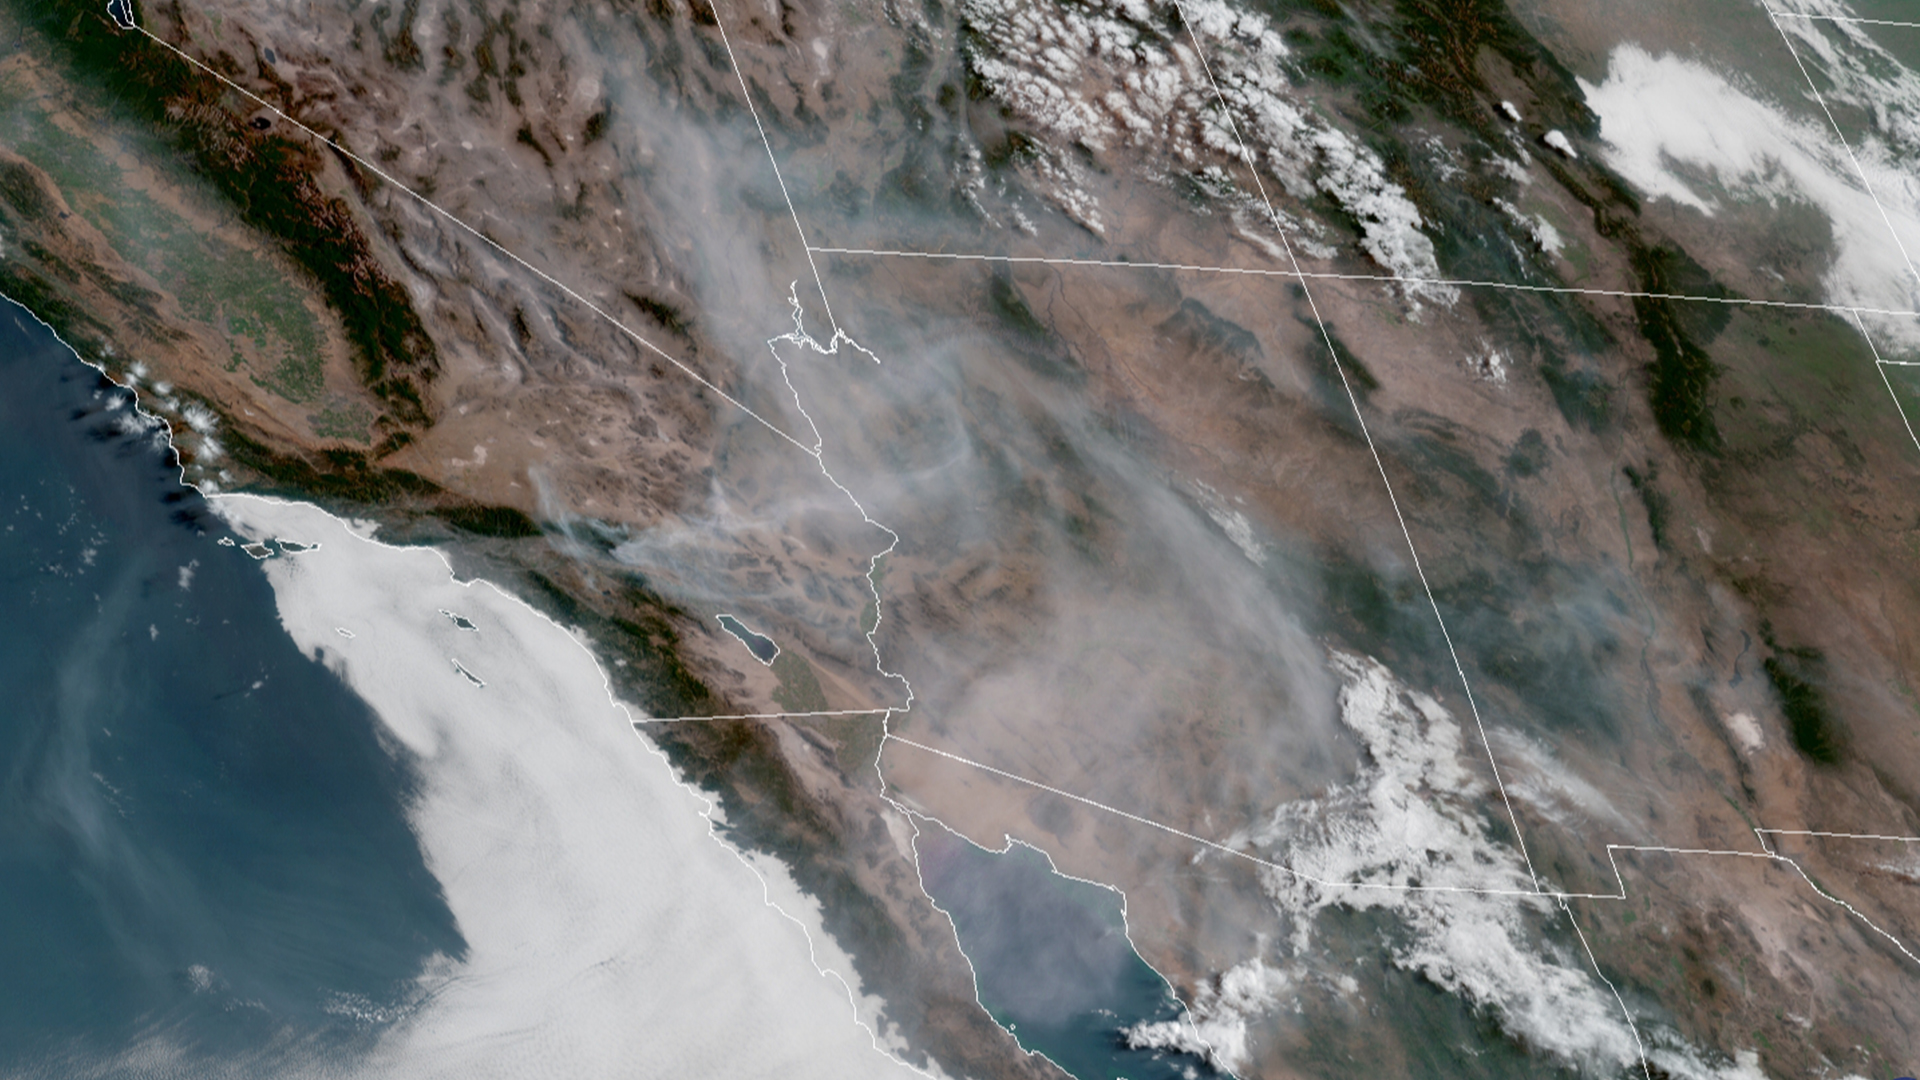 Satellite imagery shows much of Arizona shrouded in smoke from the Apple Fire burning in the San Bernardino Mountains on Aug. 3, 2020. (GOES-17/NOAA)